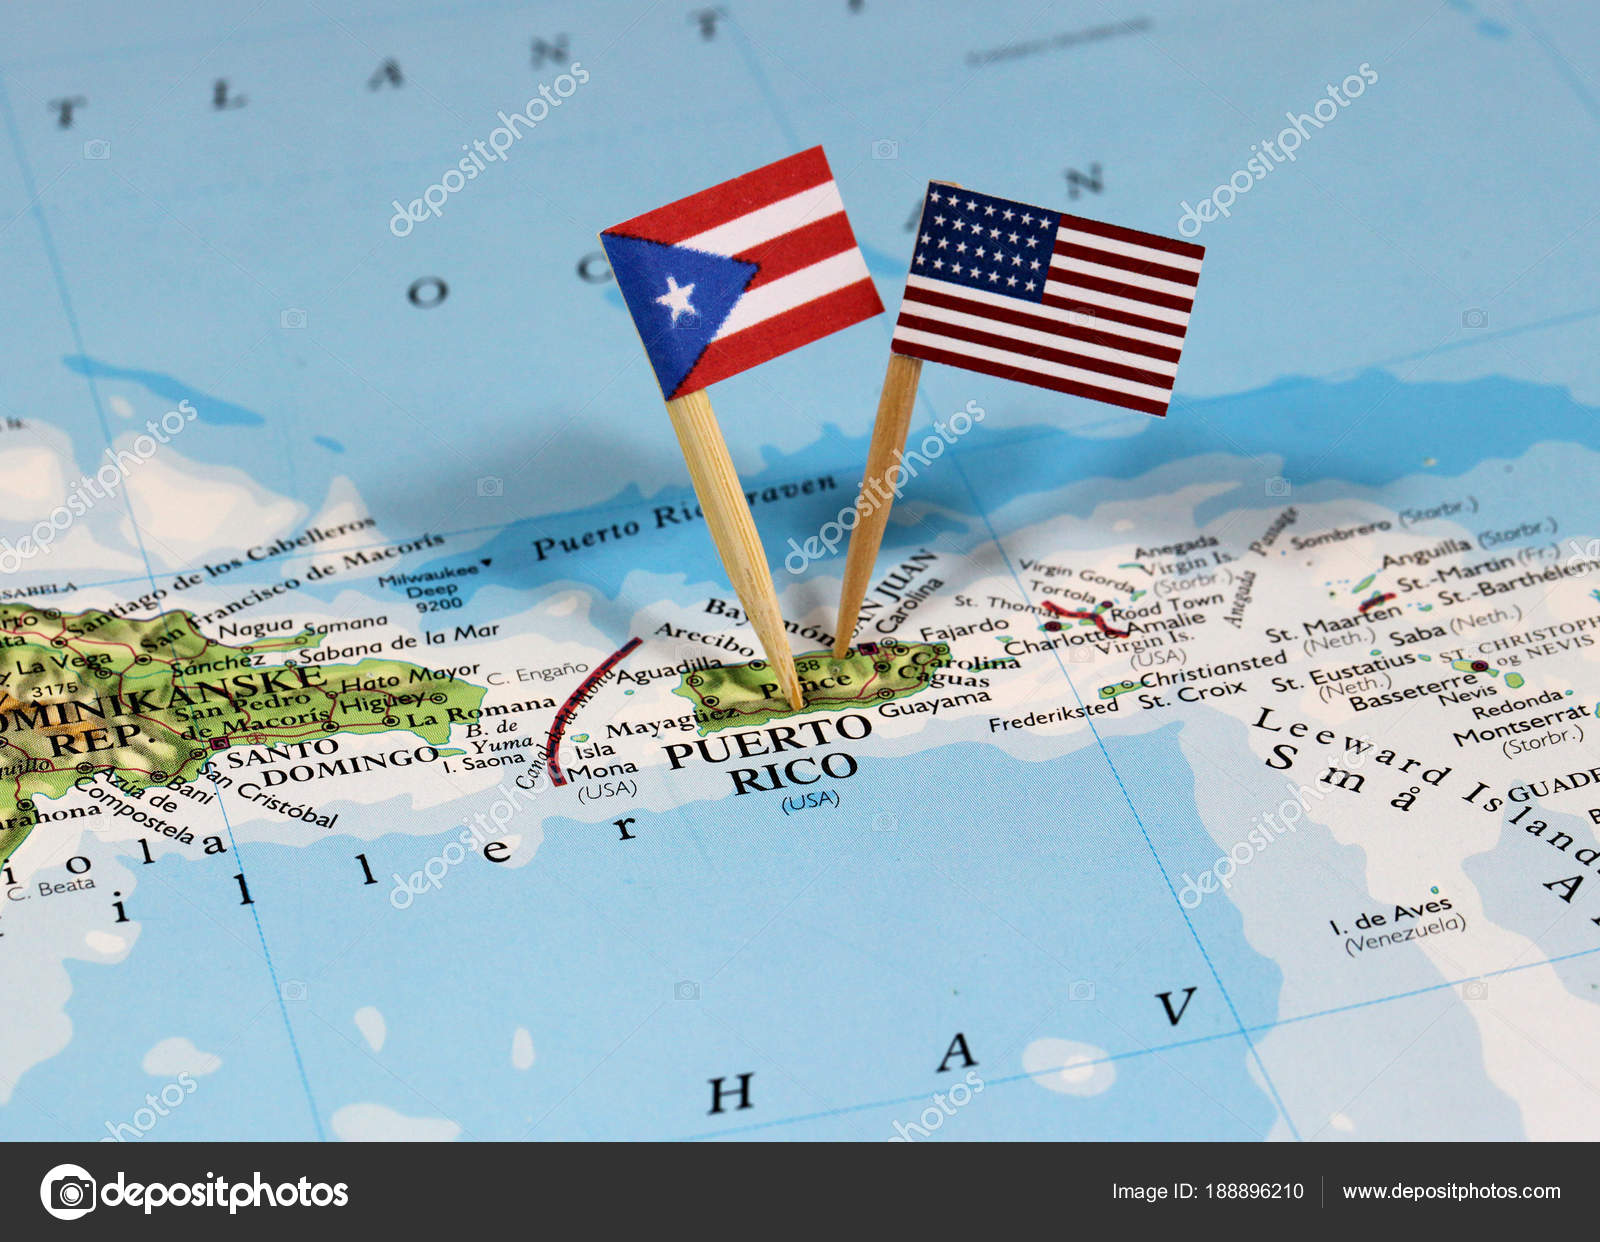 Map Pin Point Puerto Rico Flag — Stock Photo © bobby22 ... Saint Martin Map Puerto Rico Usa on usa map phoenix, usa map wi, usa map guam, usa map turkey, usa map alabama, usa map english, usa map florida, usa map bahamas, usa map dominican republic, usa map northeastern united states, usa map new zealand, usa map south carolina, usa map of the united states, usa map jamaica, usa map cuba, usa map atlantic ocean, usa map appalachian mountains, usa map virgin islands, usa map west indies, usa map europe,